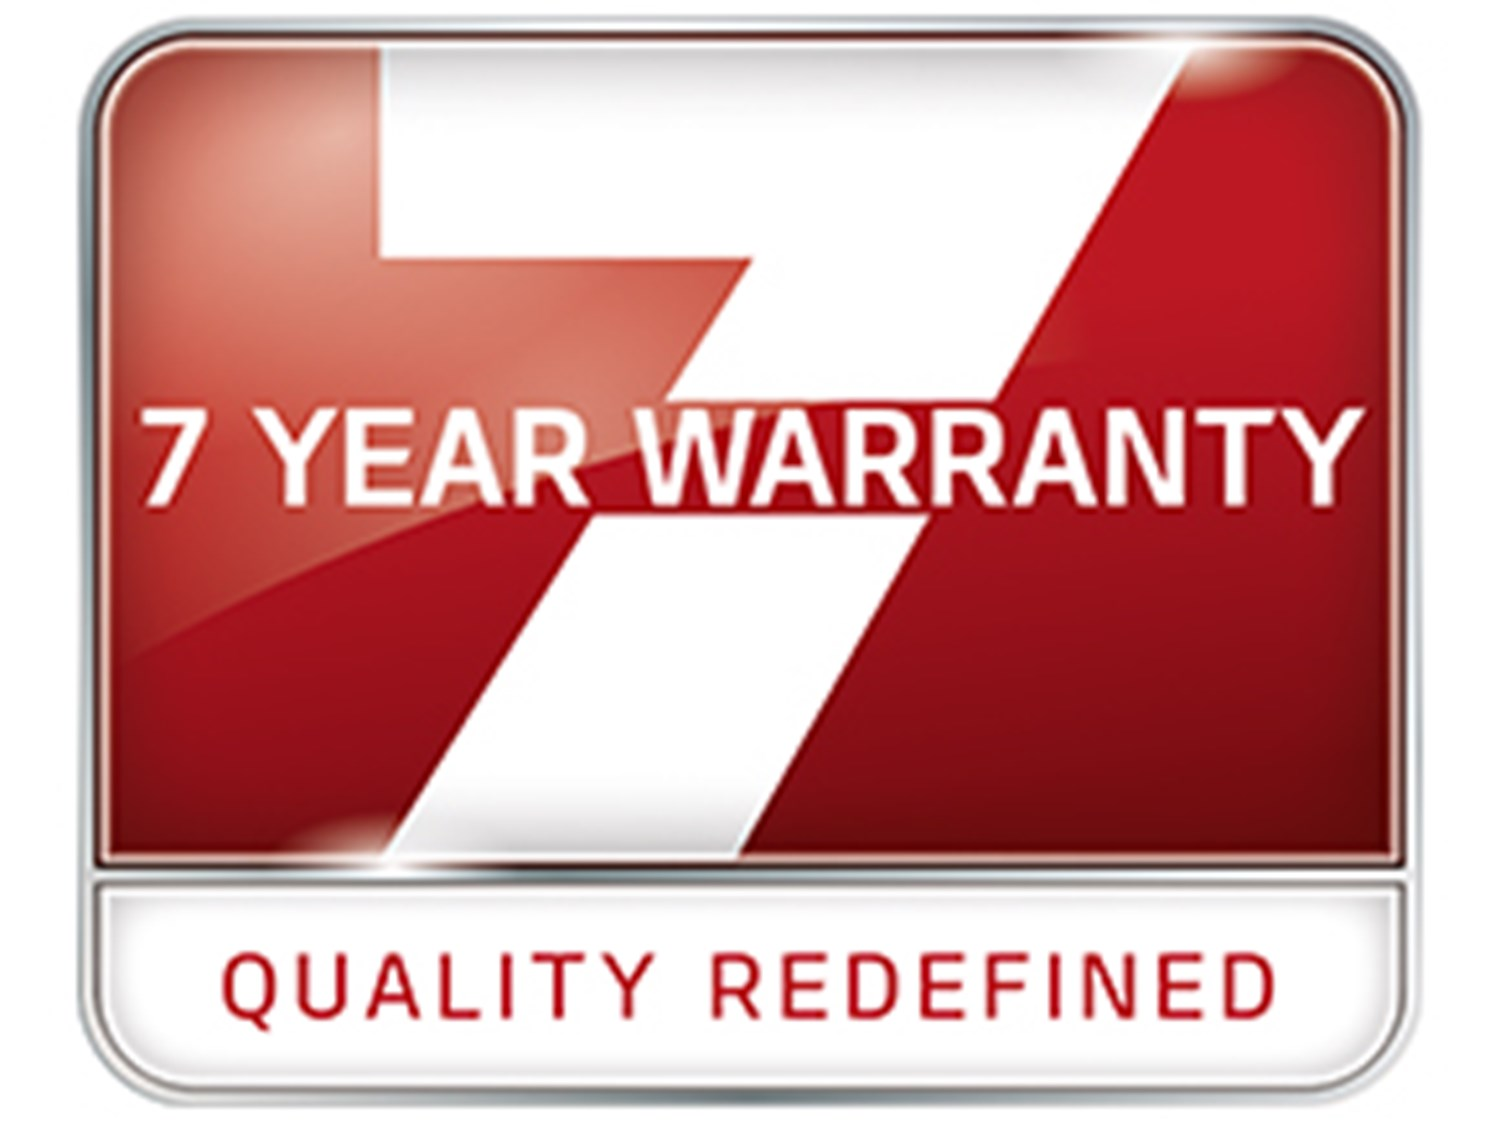 Kia 7 Year Warranty